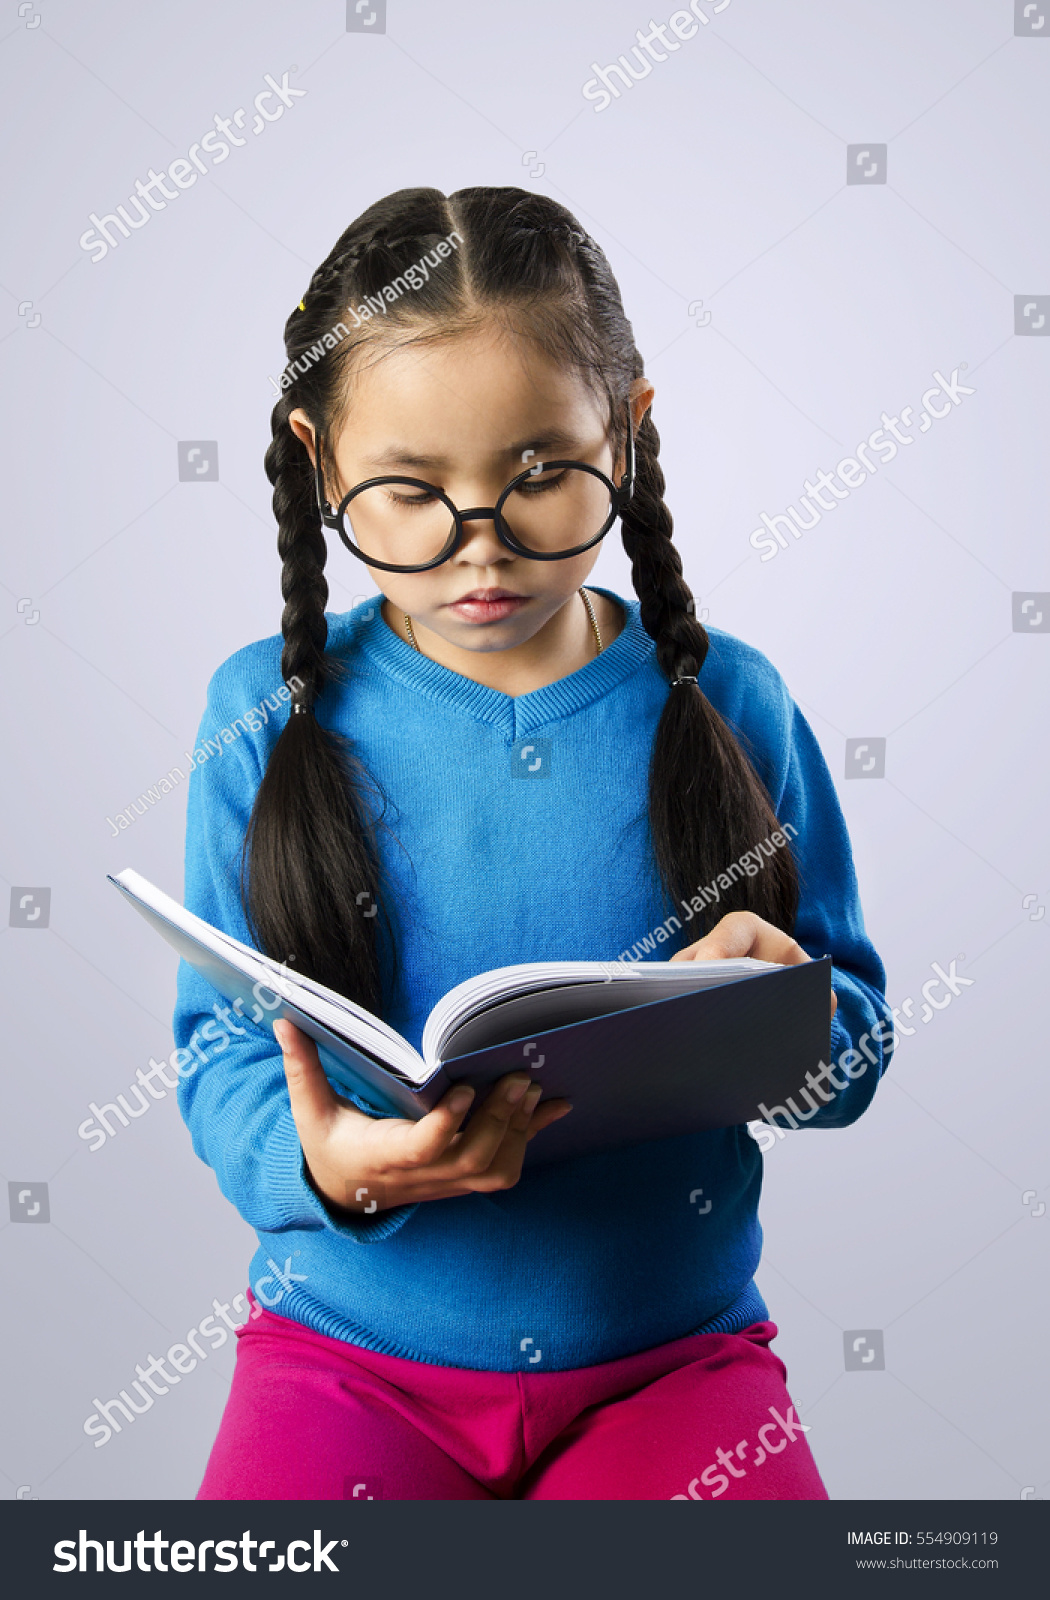 Cute Asian Little Girl Blue Sweater Stock Photo 554909119 ...